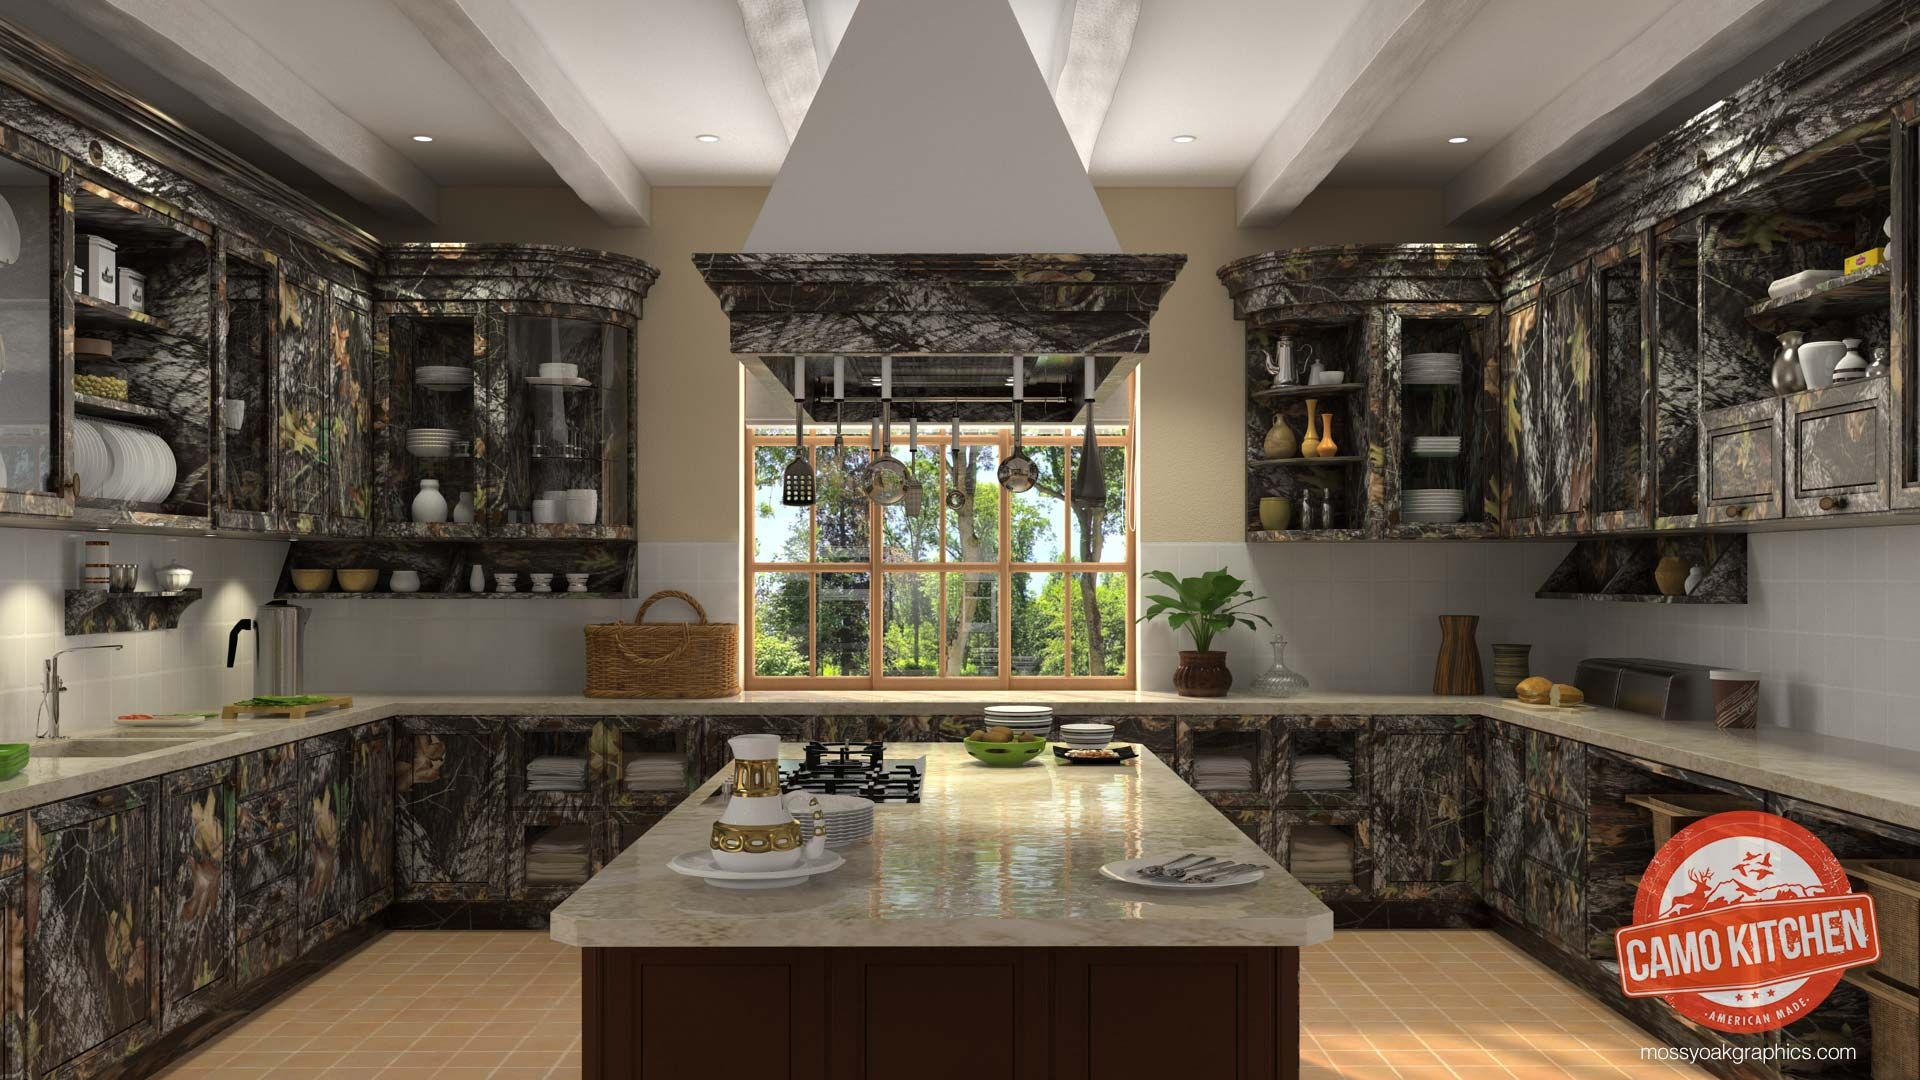 Oh My Good God Can You Believe This Camo Kitchen How Fabulous